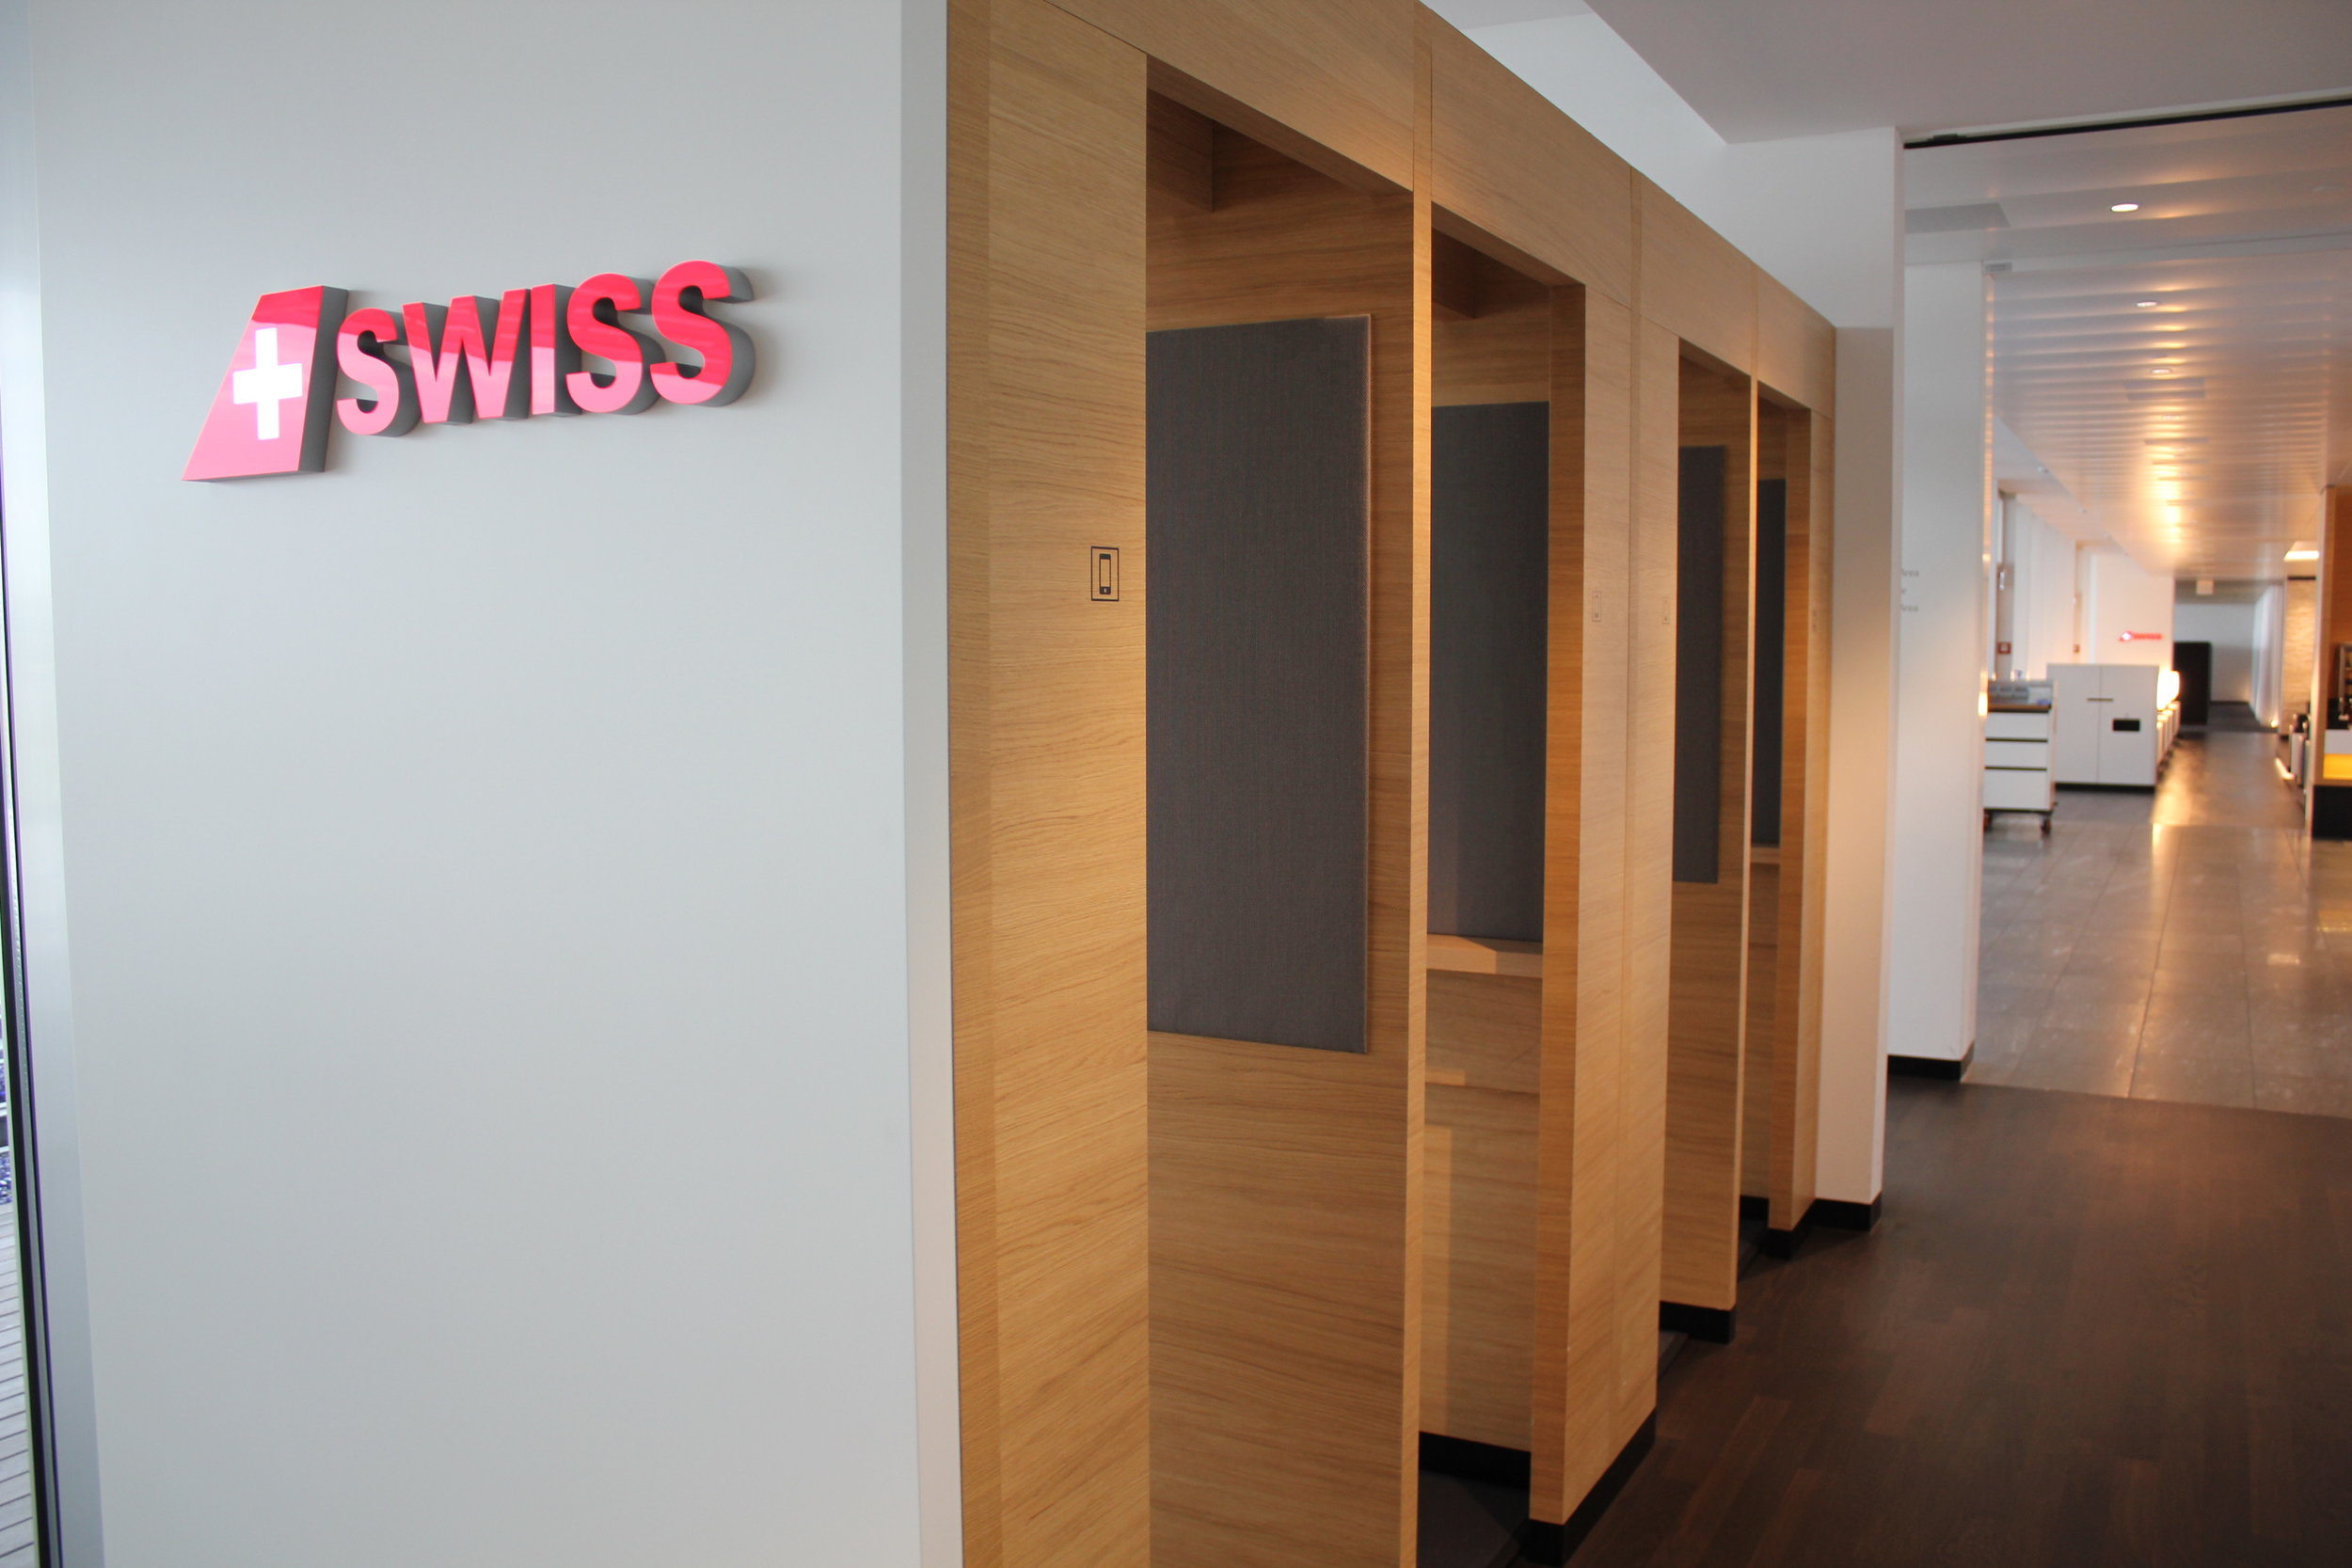 Swiss Senator Lounge Zurich – Phone booths